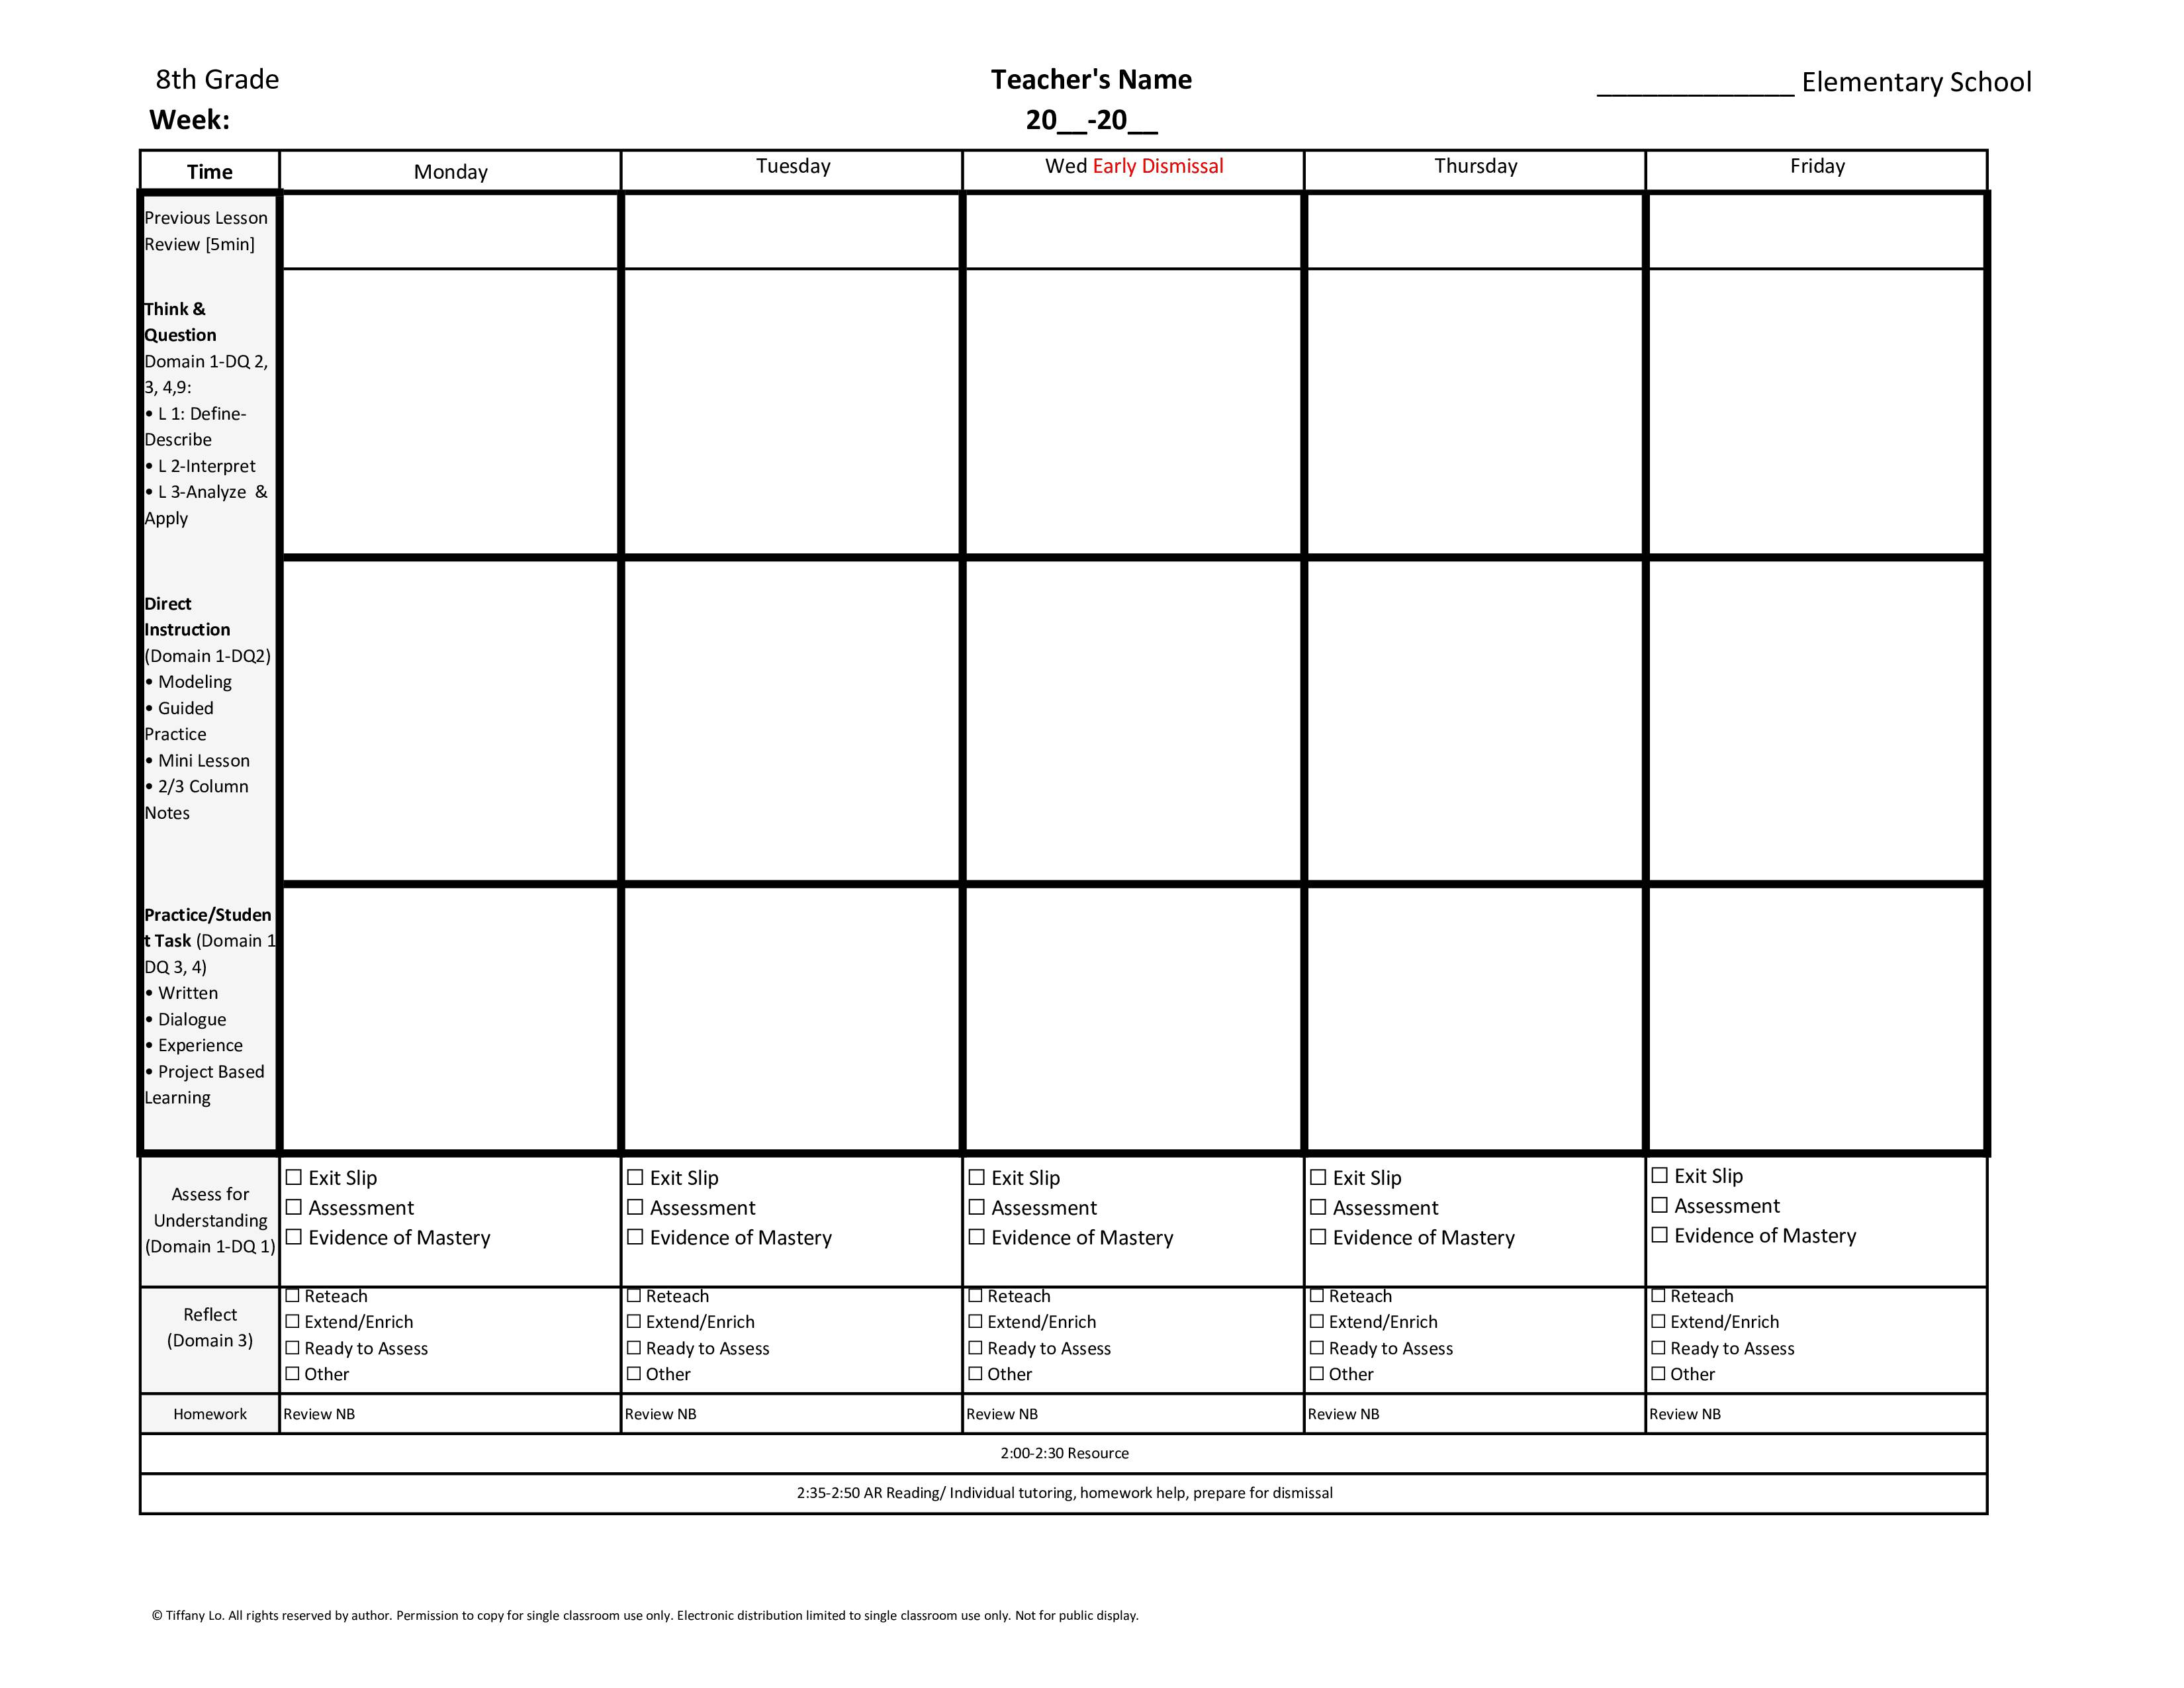 Th Eighth Grade Weekly Lesson Plan Template W Florida Standards - Lesson plan template florida